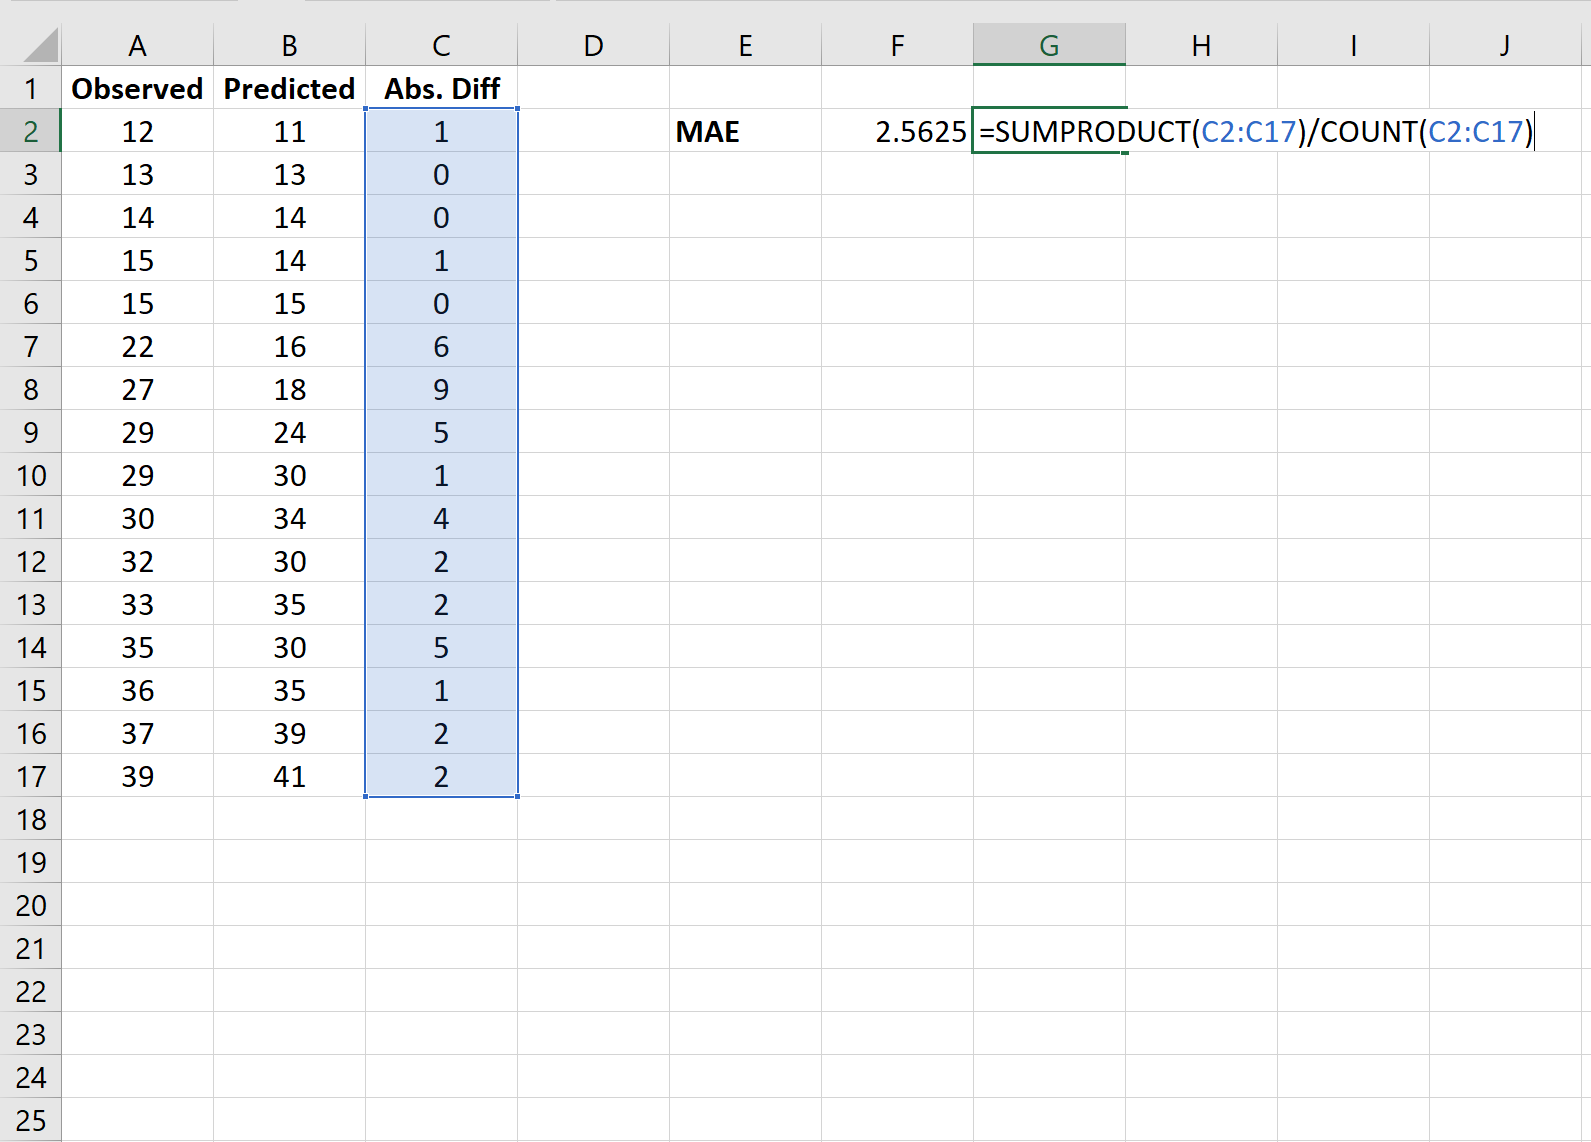 Mean absolute error in Excel